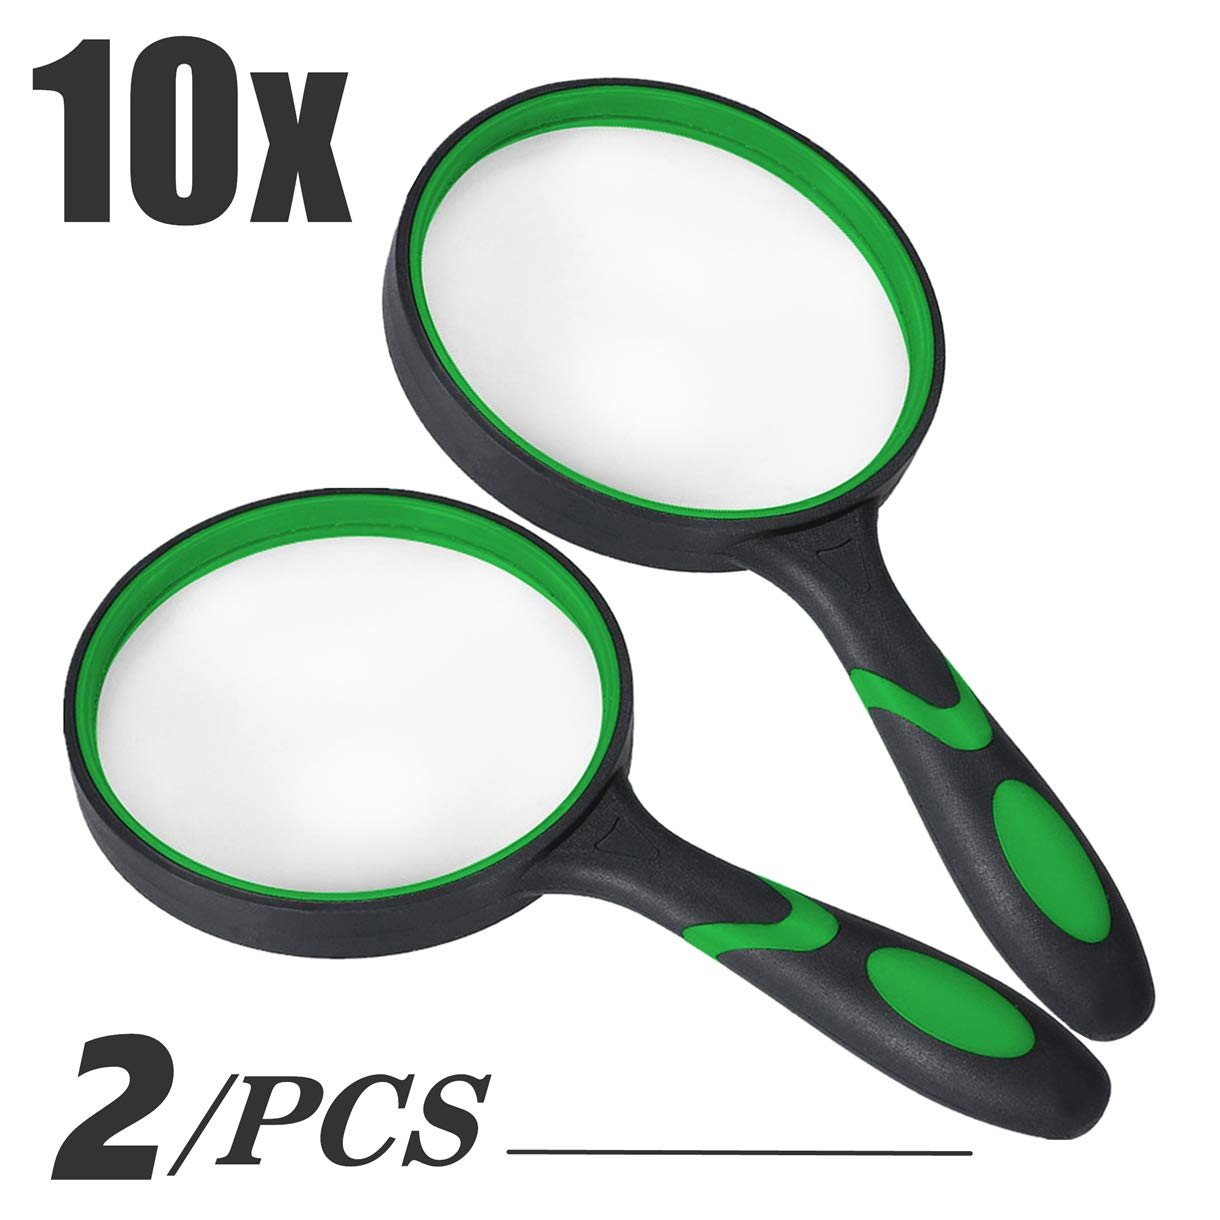 Thickened Rubbery Glass Frame with Non-Slip Handheld Soft Handle Design for Seniors//Kids Newspapers Books Maps Reading//Science Discovery Hobby Reading Magnifier with 75mm Lens Magnifying Glass 10x